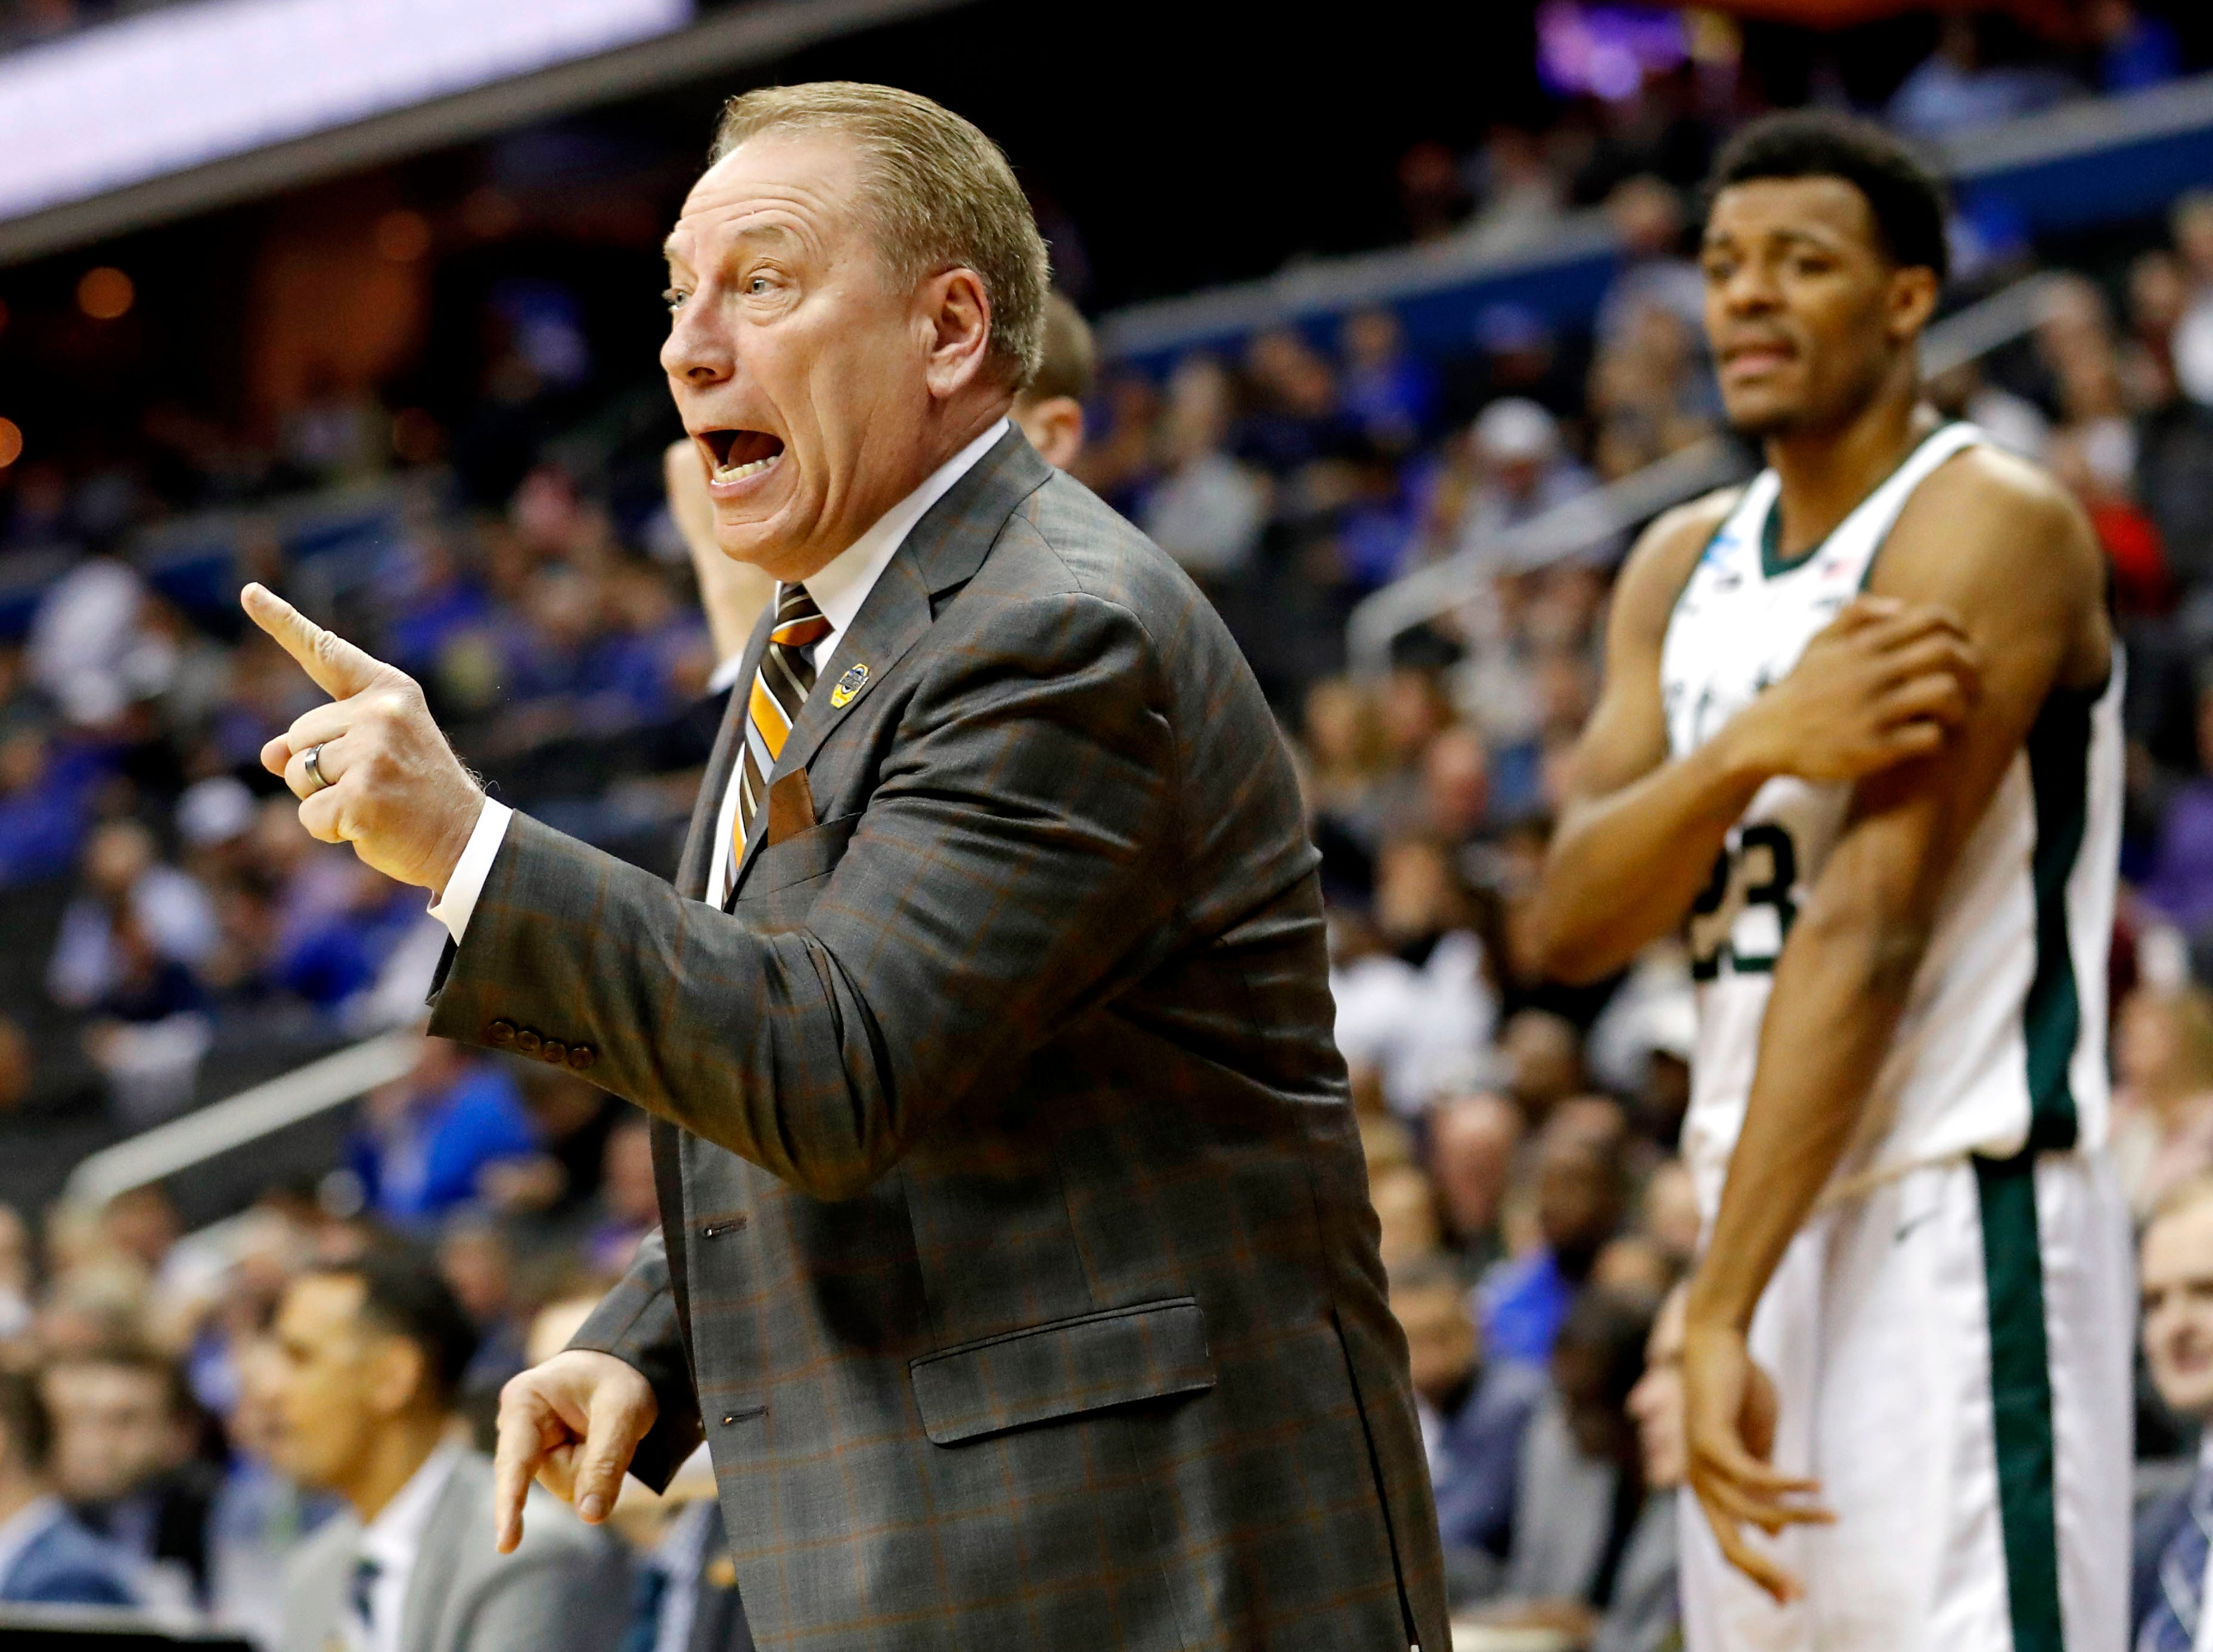 Mar 29, 2019; Washington, DC, USA; Michigan State Spartans head coach Tom Izzo reacts during the first half against the LSU Tigers in the semifinals of the east regional of the 2019 NCAA Tournament at Capital One Arena. Mandatory Credit: Geoff Burke-USA TODAY Sports